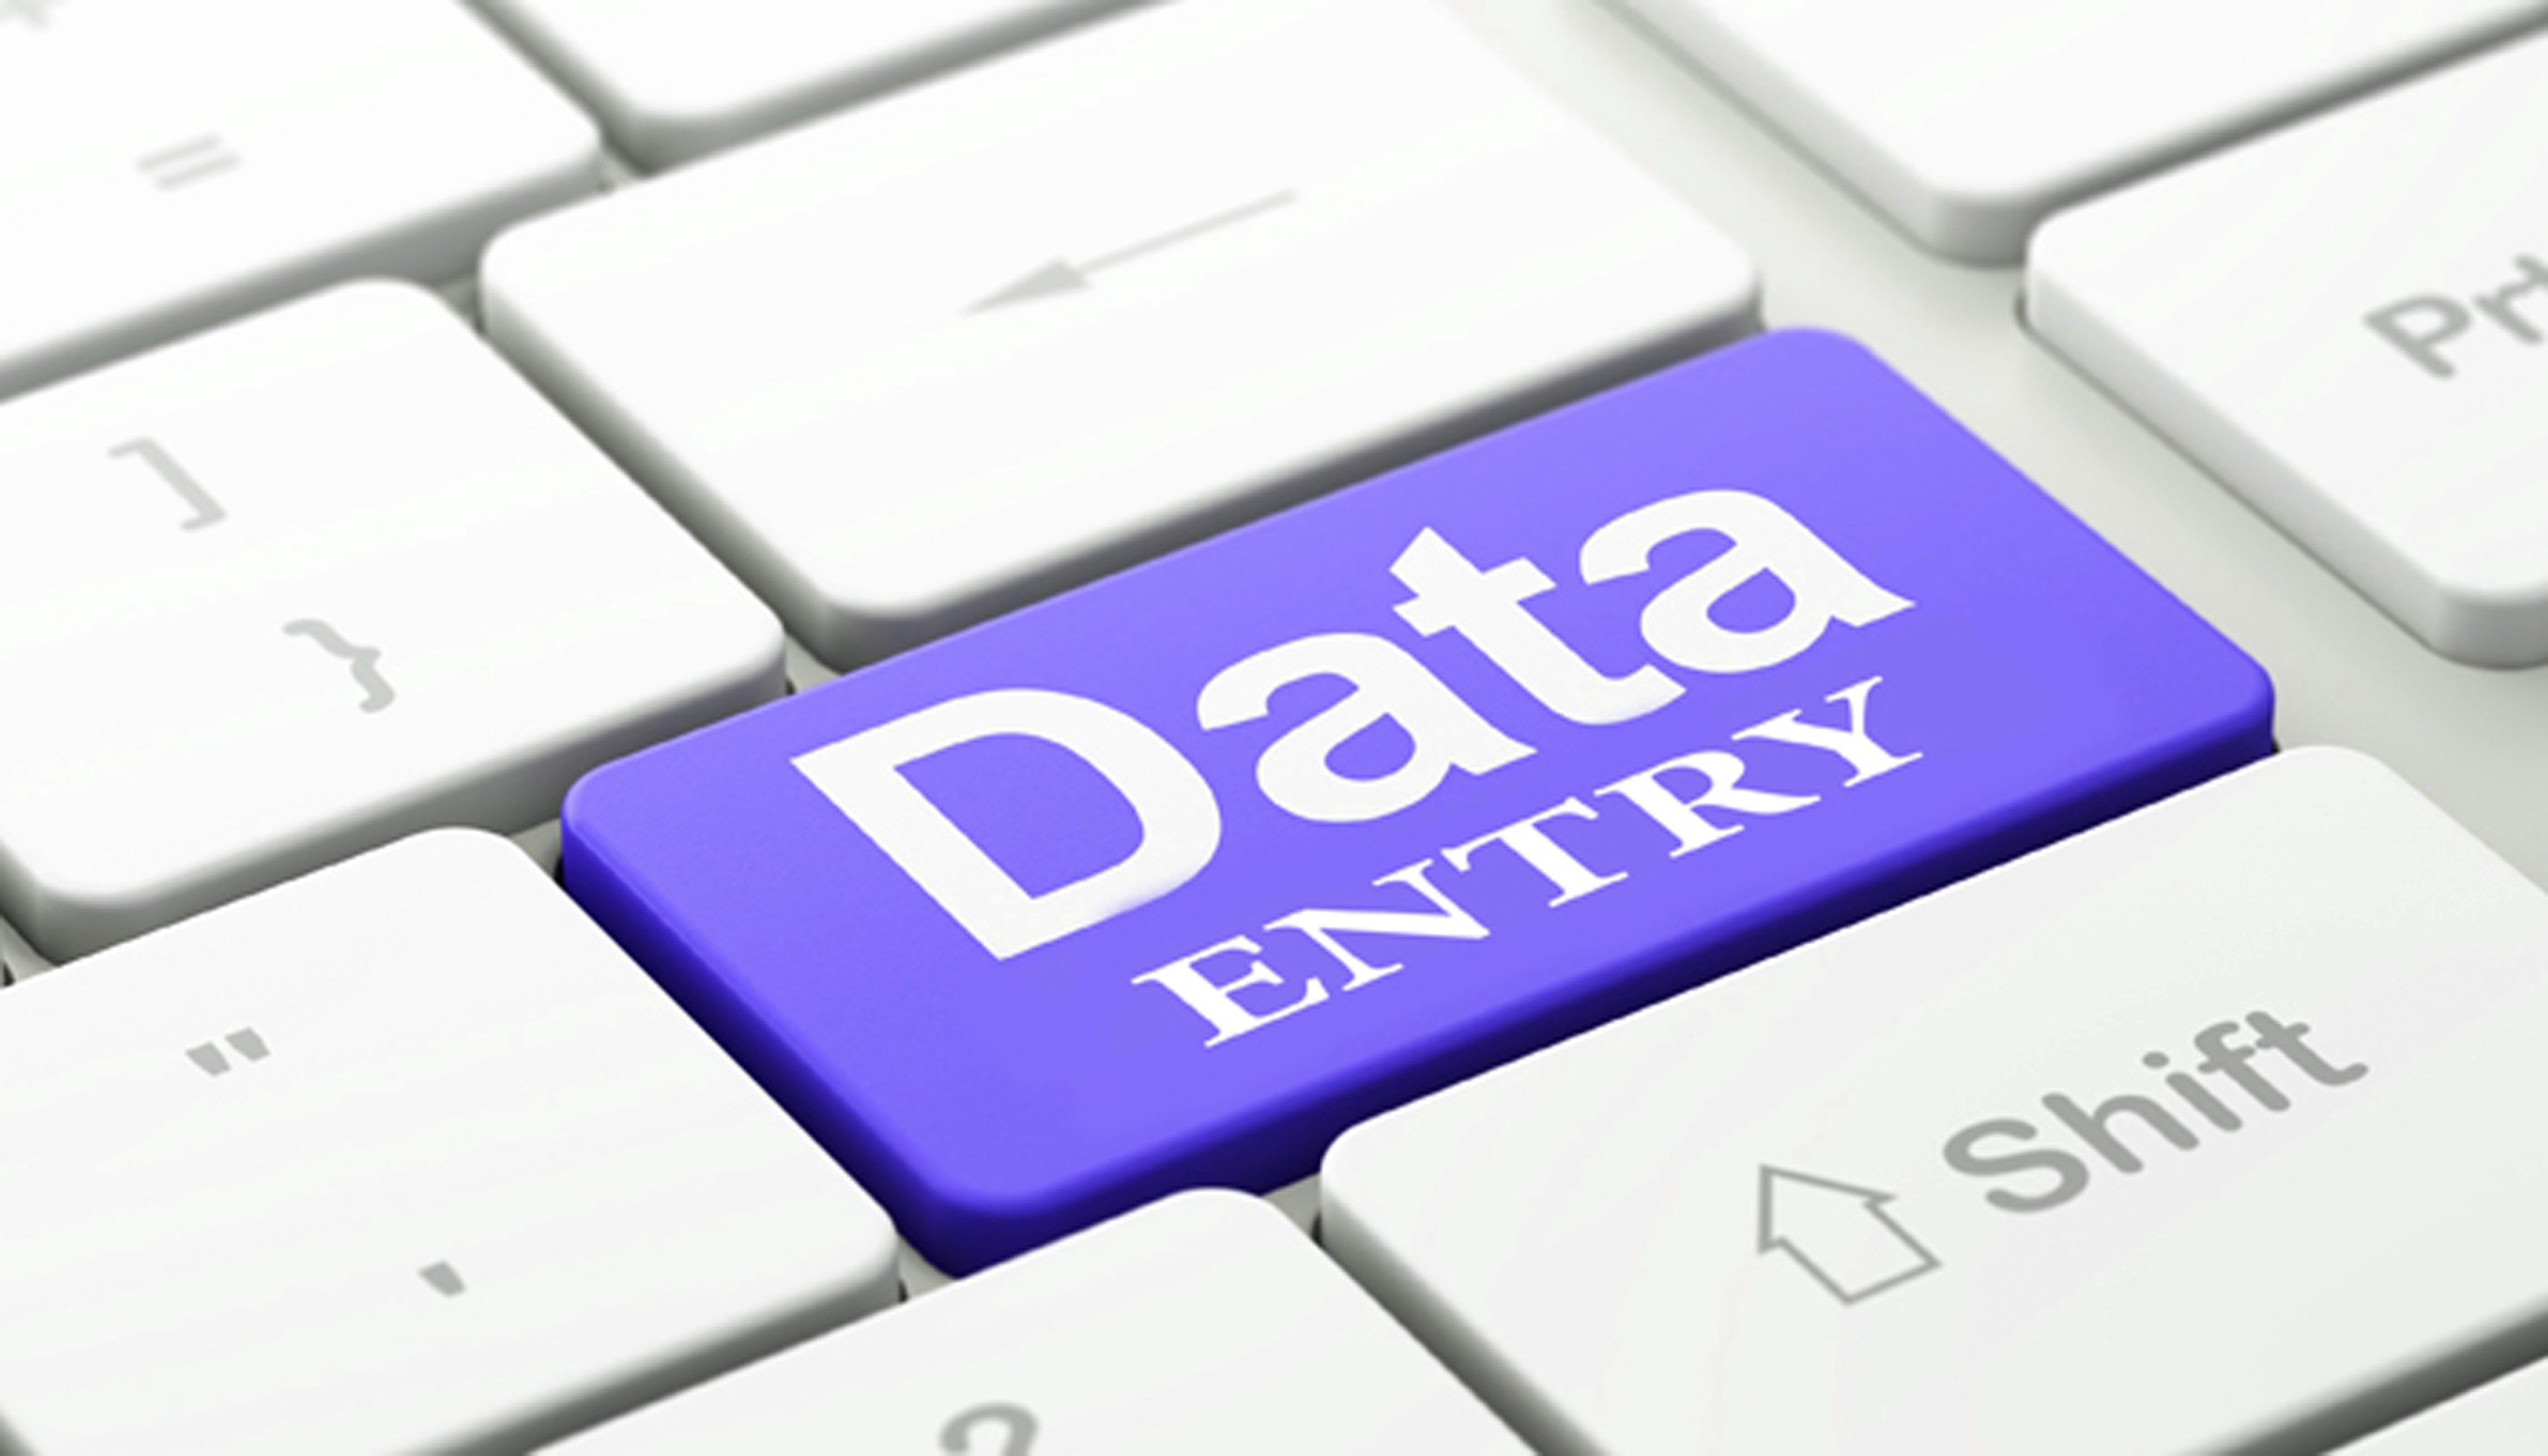 I will be your virtual assistant for web research,  data entry,  research